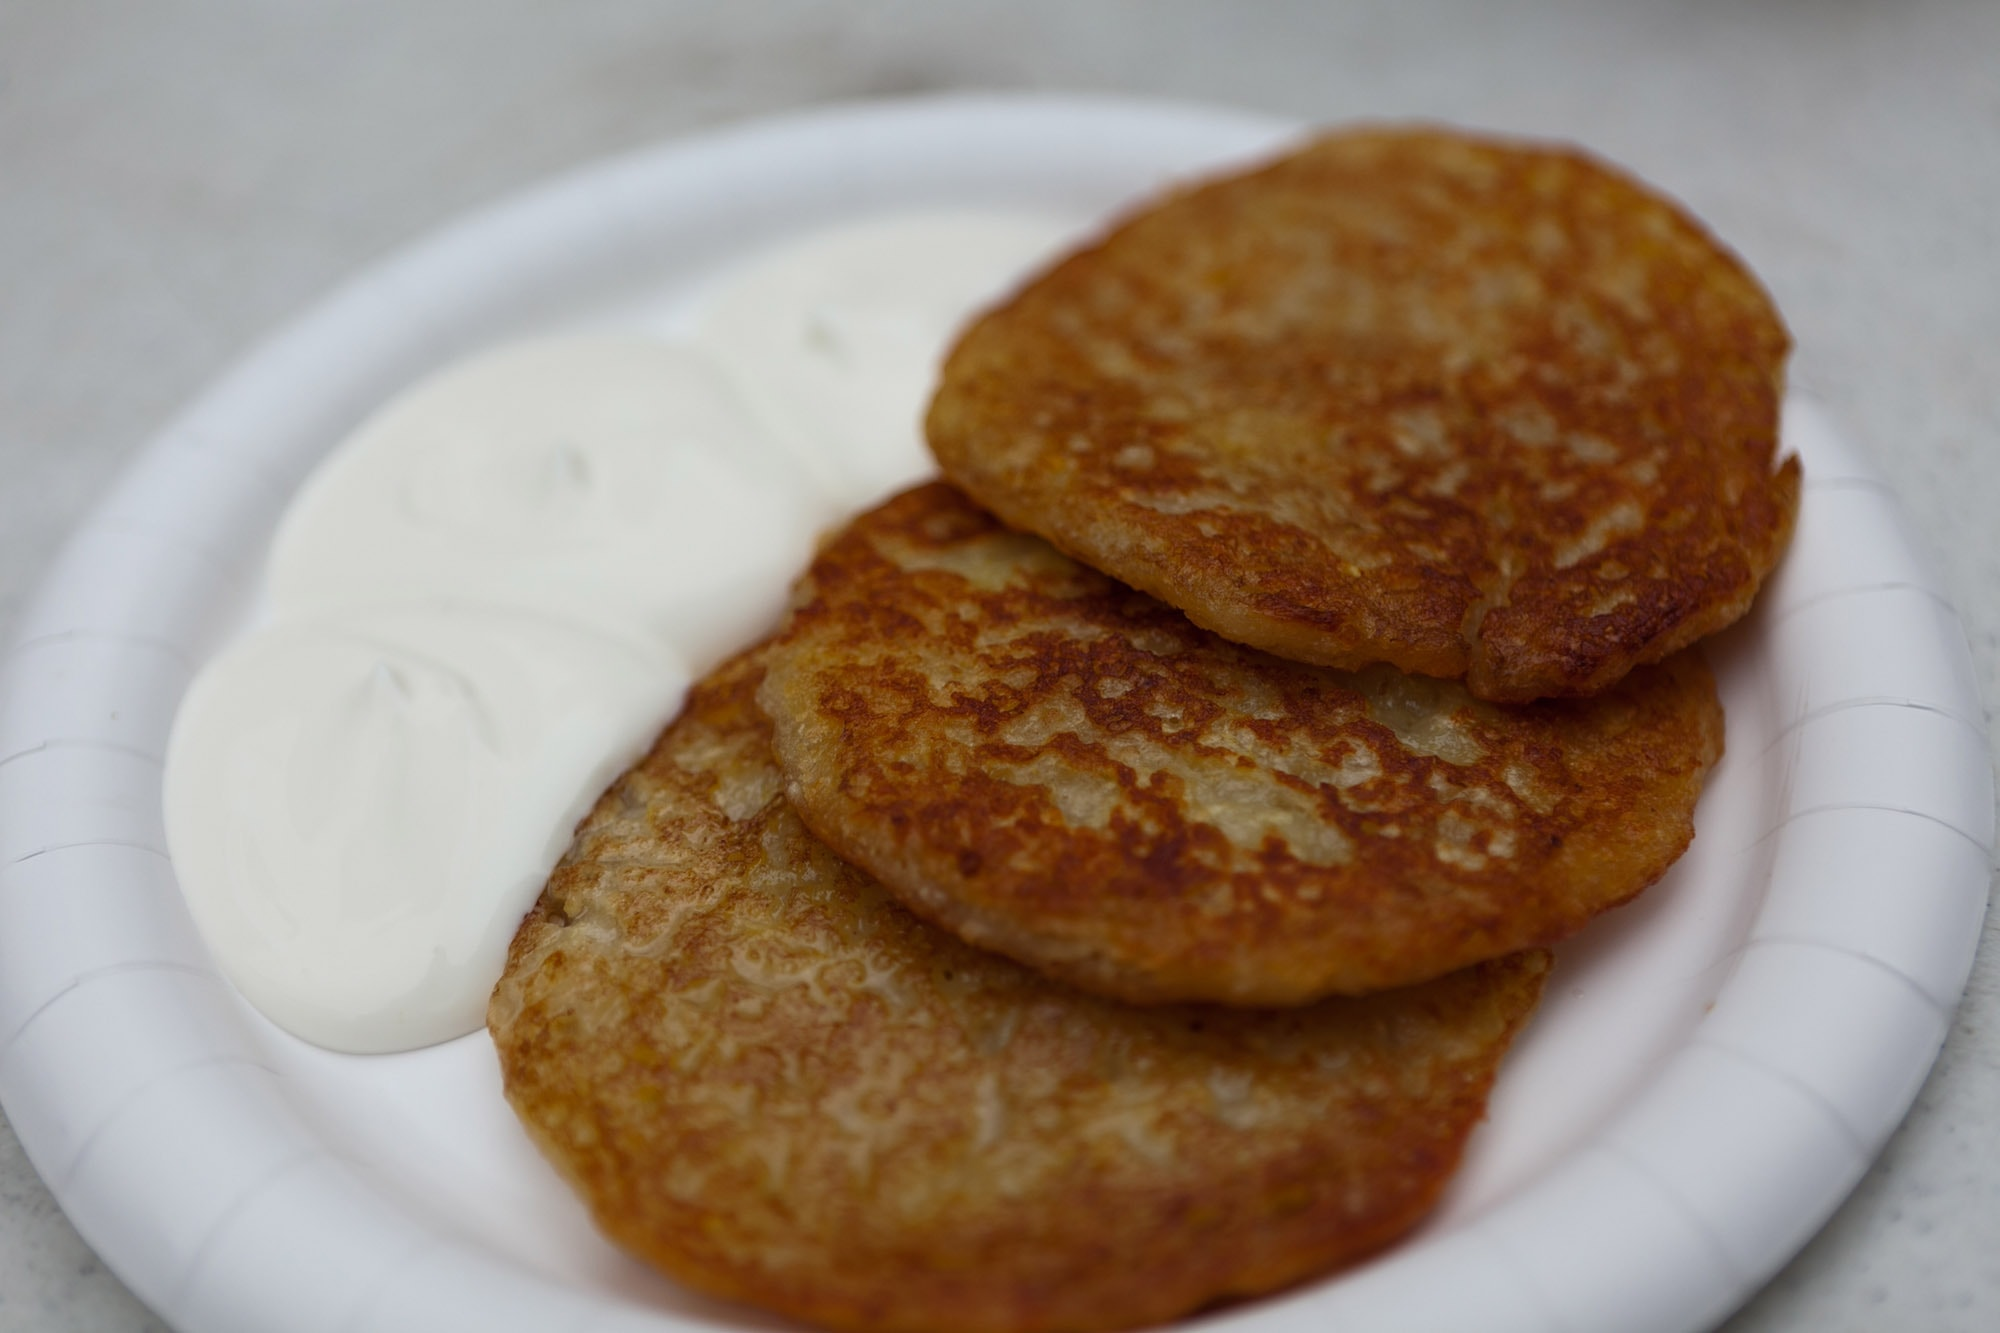 Potato pancakes at Christkindlmarket in Chicago, Illinois